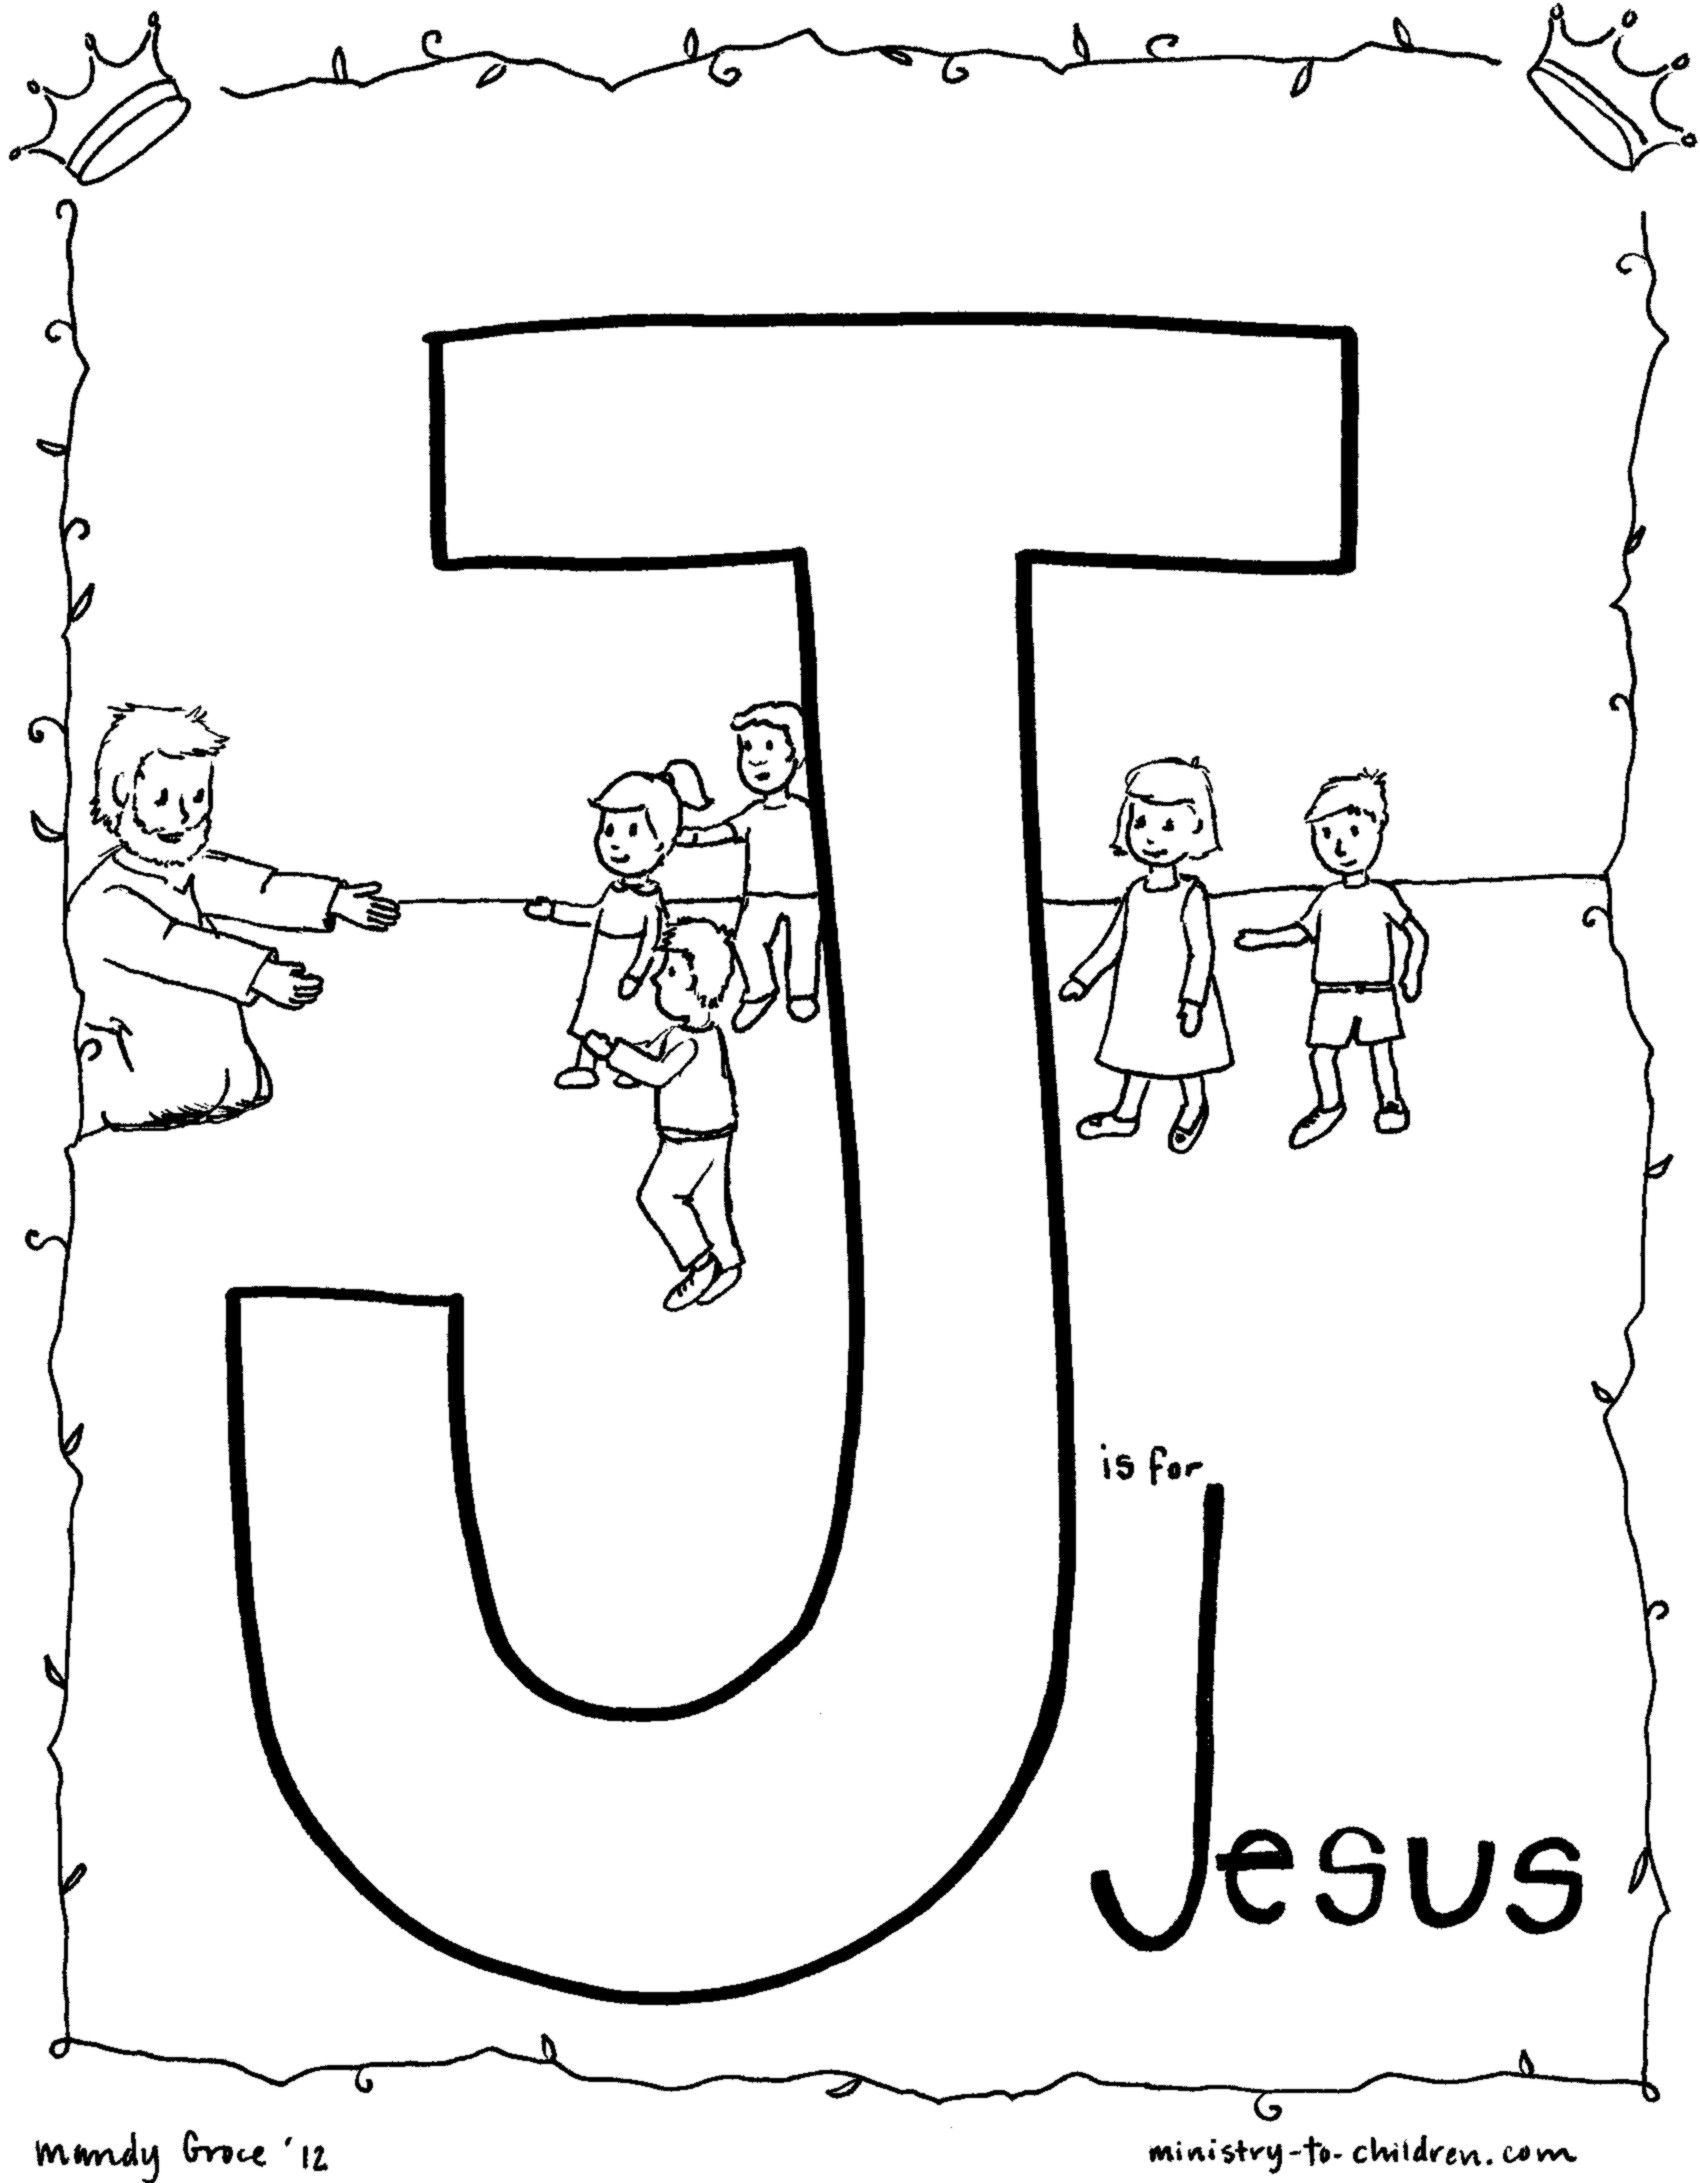 preschool bible coloring pages - photo#31